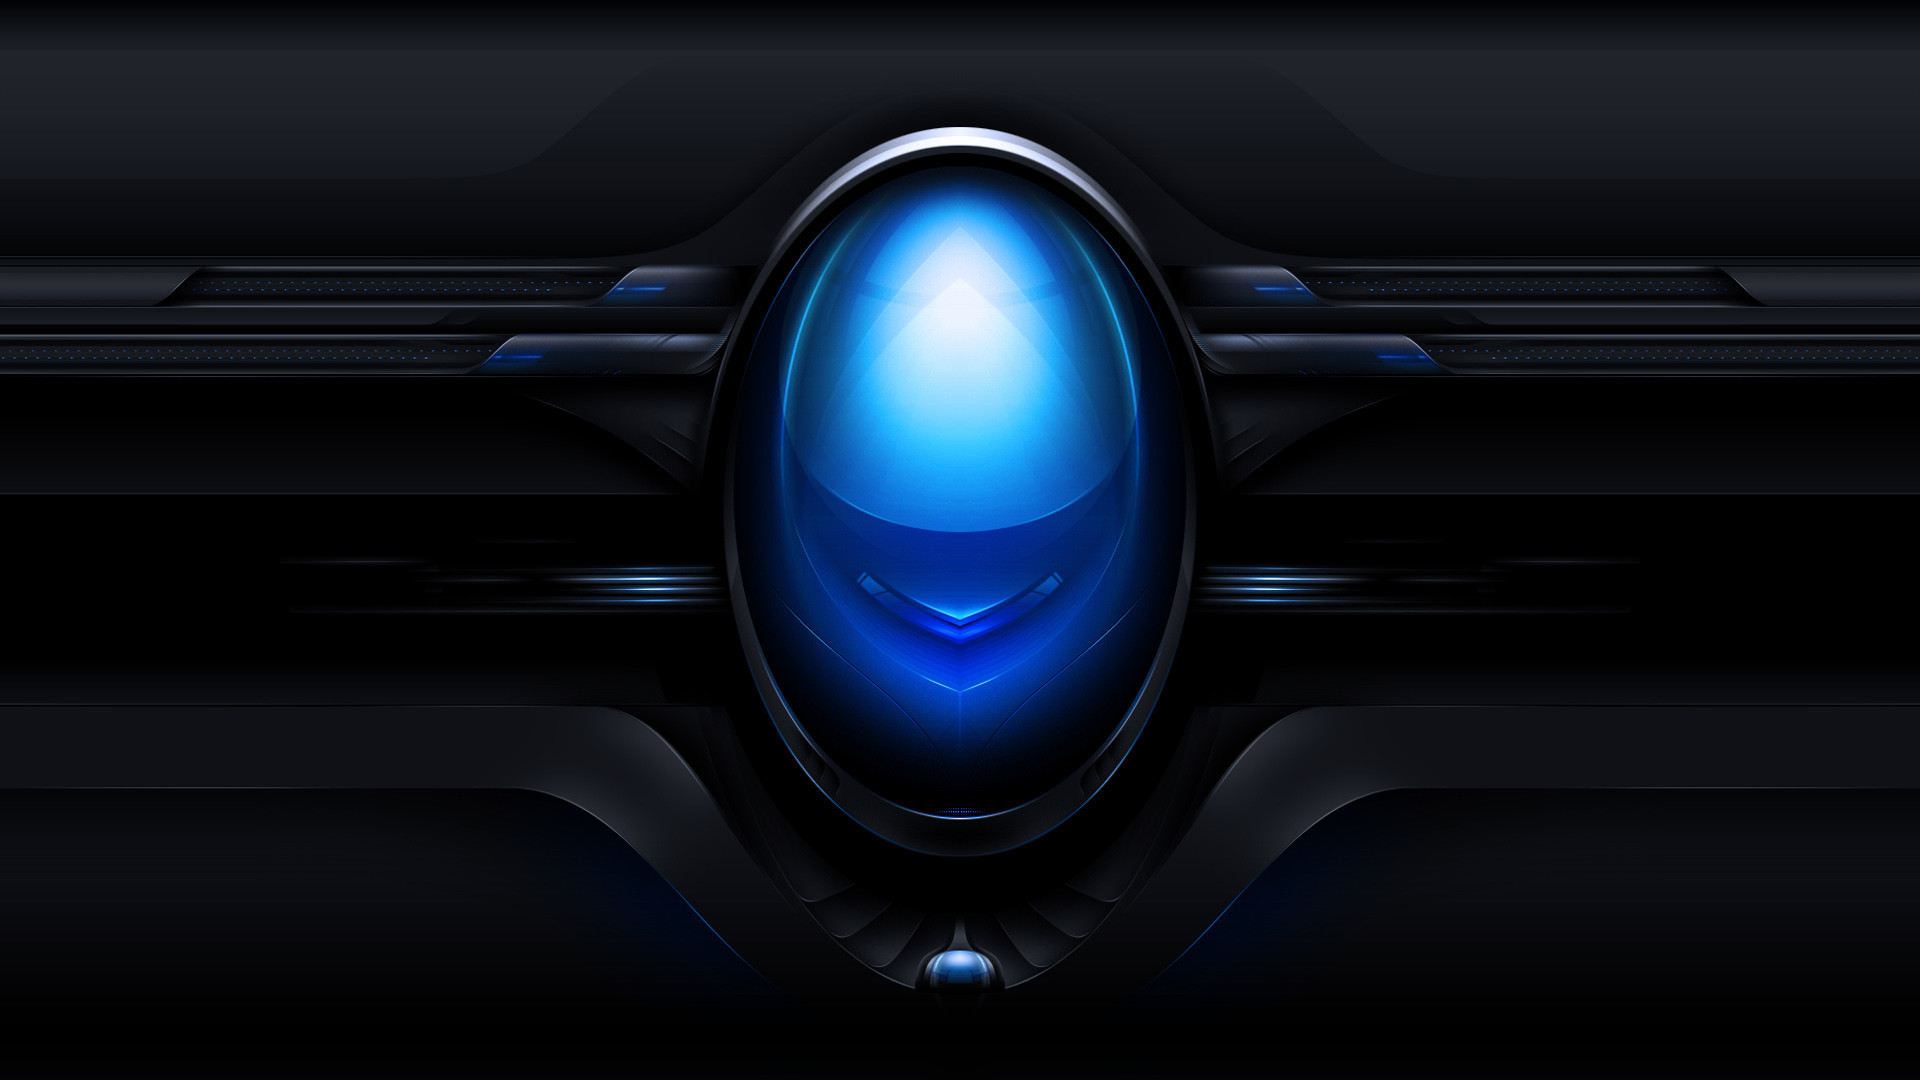 38696486 Alienware Full HD Quality Wallpapers - 1920x1080 px